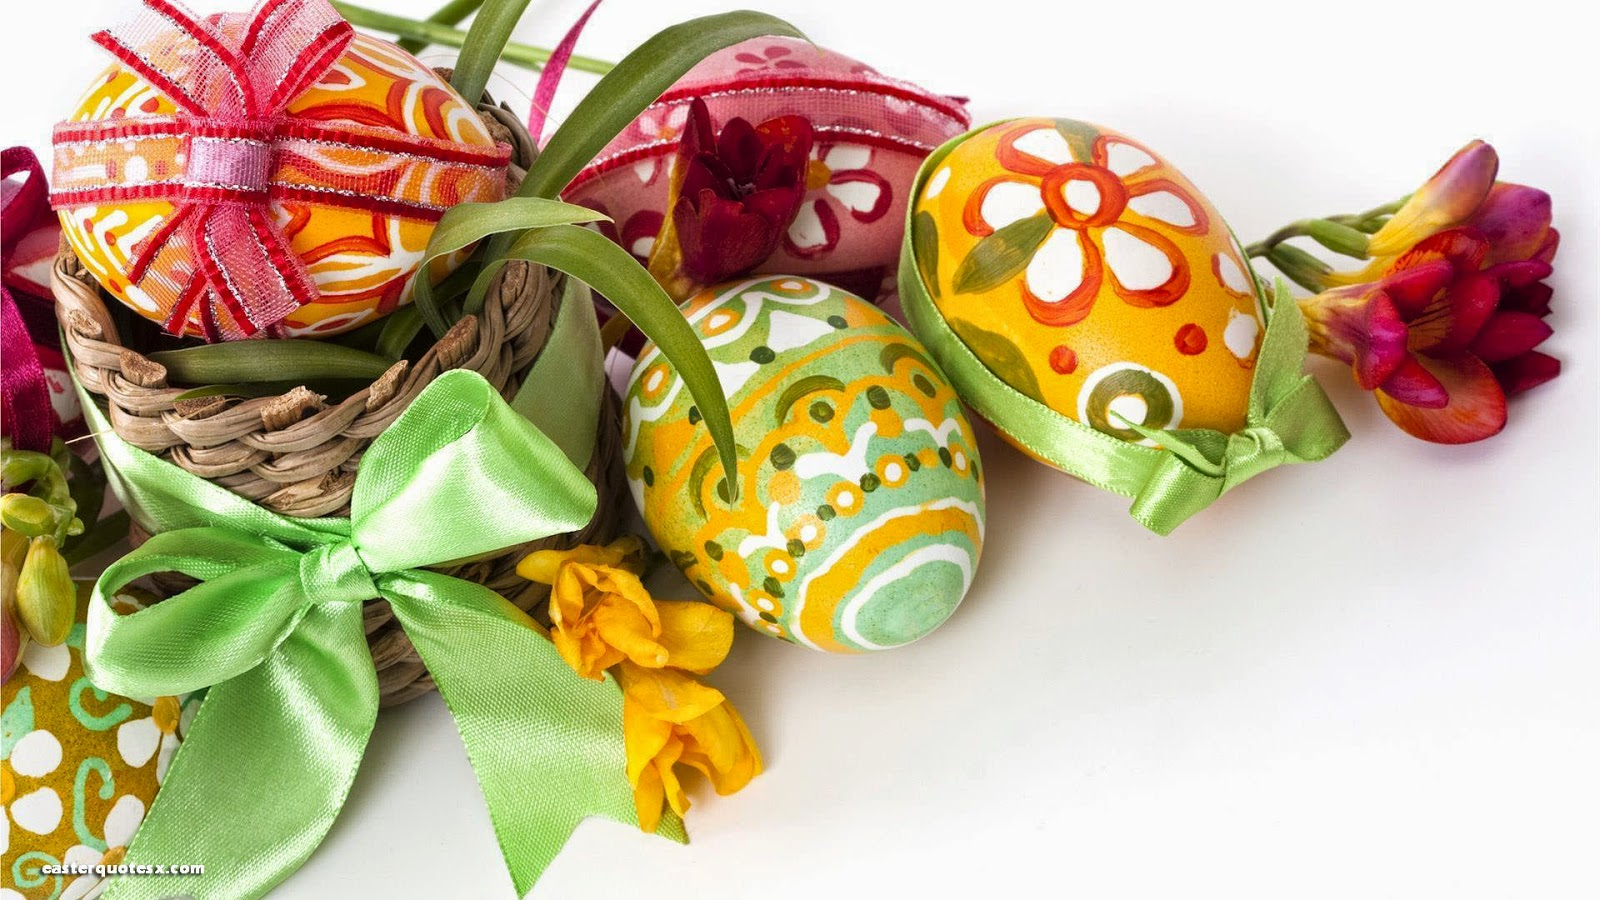 Easter Eggs 2015 Pictures - Easter Eggs 2015 Images - Easter Eggs 2015 WallPaper Easter Eggs 2015 Pictures - Easter Eggs 2015 Images - Easter Eggs 2015 WallPaper Easter Eggs 2015 Pictures - Easter Eggs 2015 Images - Easter Eggs 2015 WallPaper Easter Eggs 2015 Pictures - Easter Eggs 2015 Images - Easter Eggs 2015 WallPaper